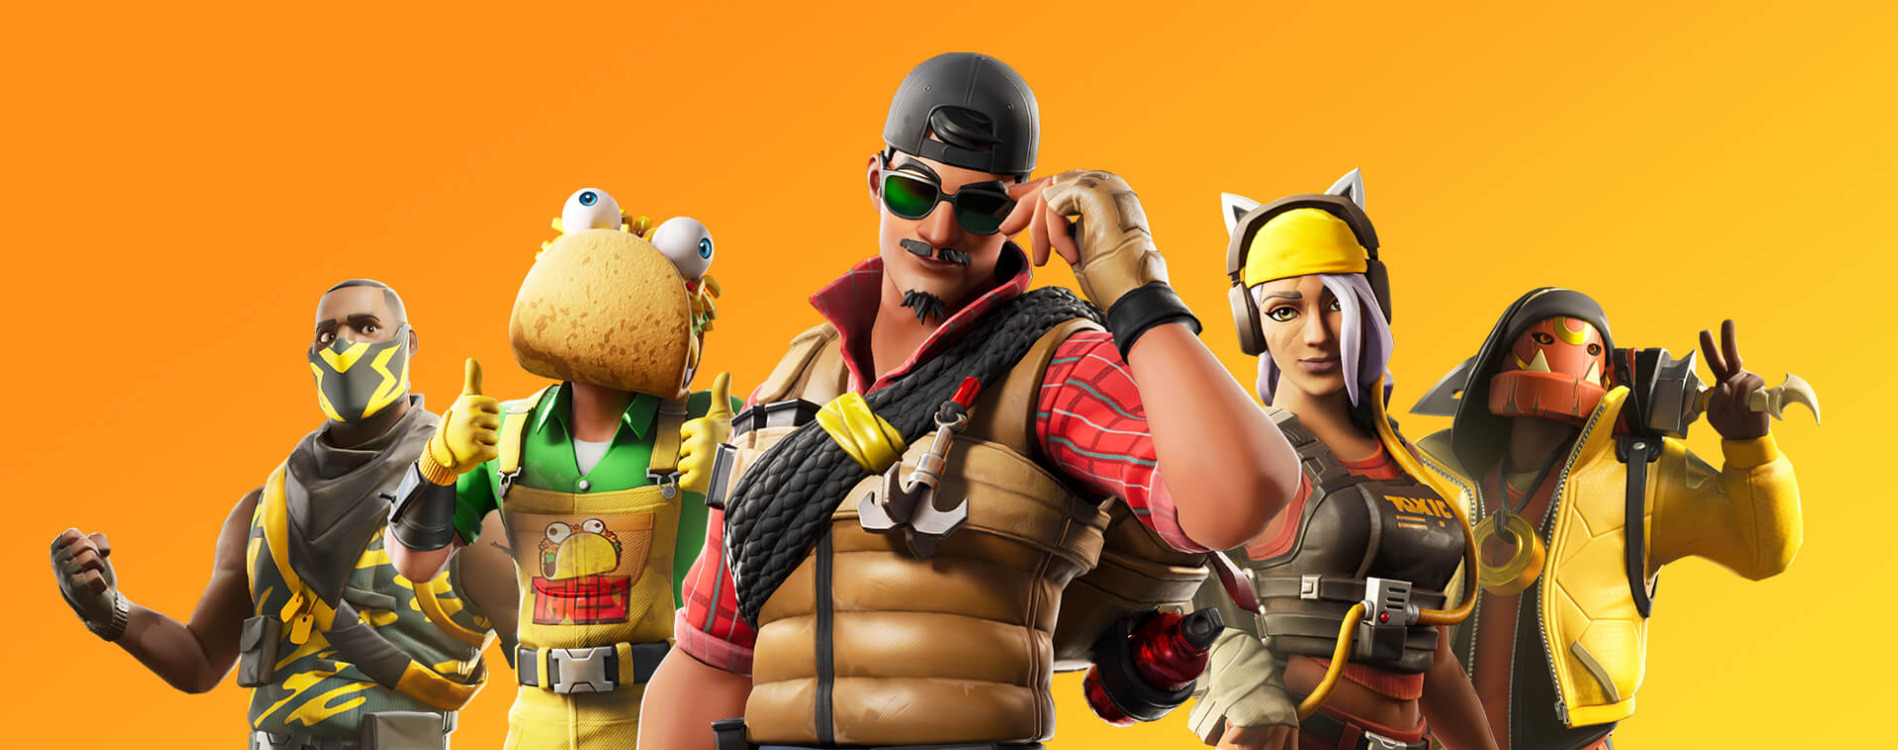 DIgital collectibles in Fortnite - such cosmetic items can be connected to physical souvenir to create phygital assets